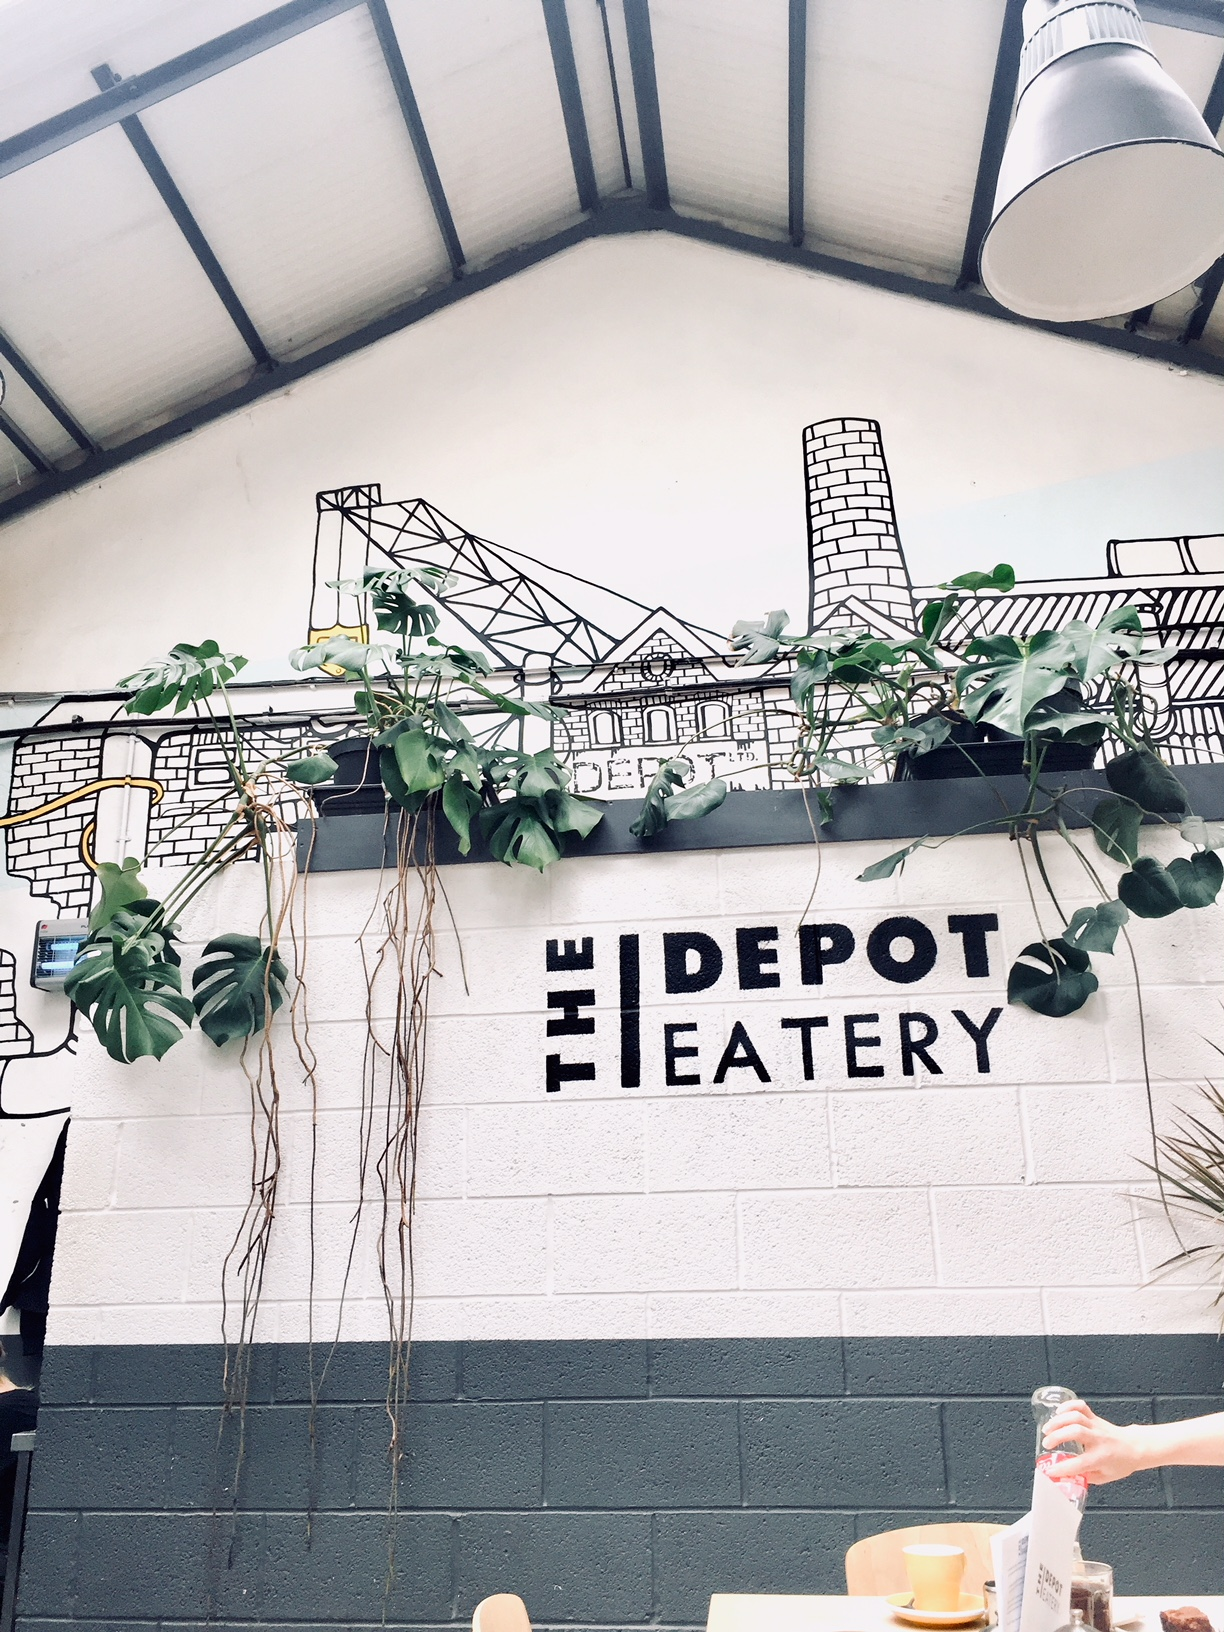 Sheffield Coffee Shop: The Depot Bakery